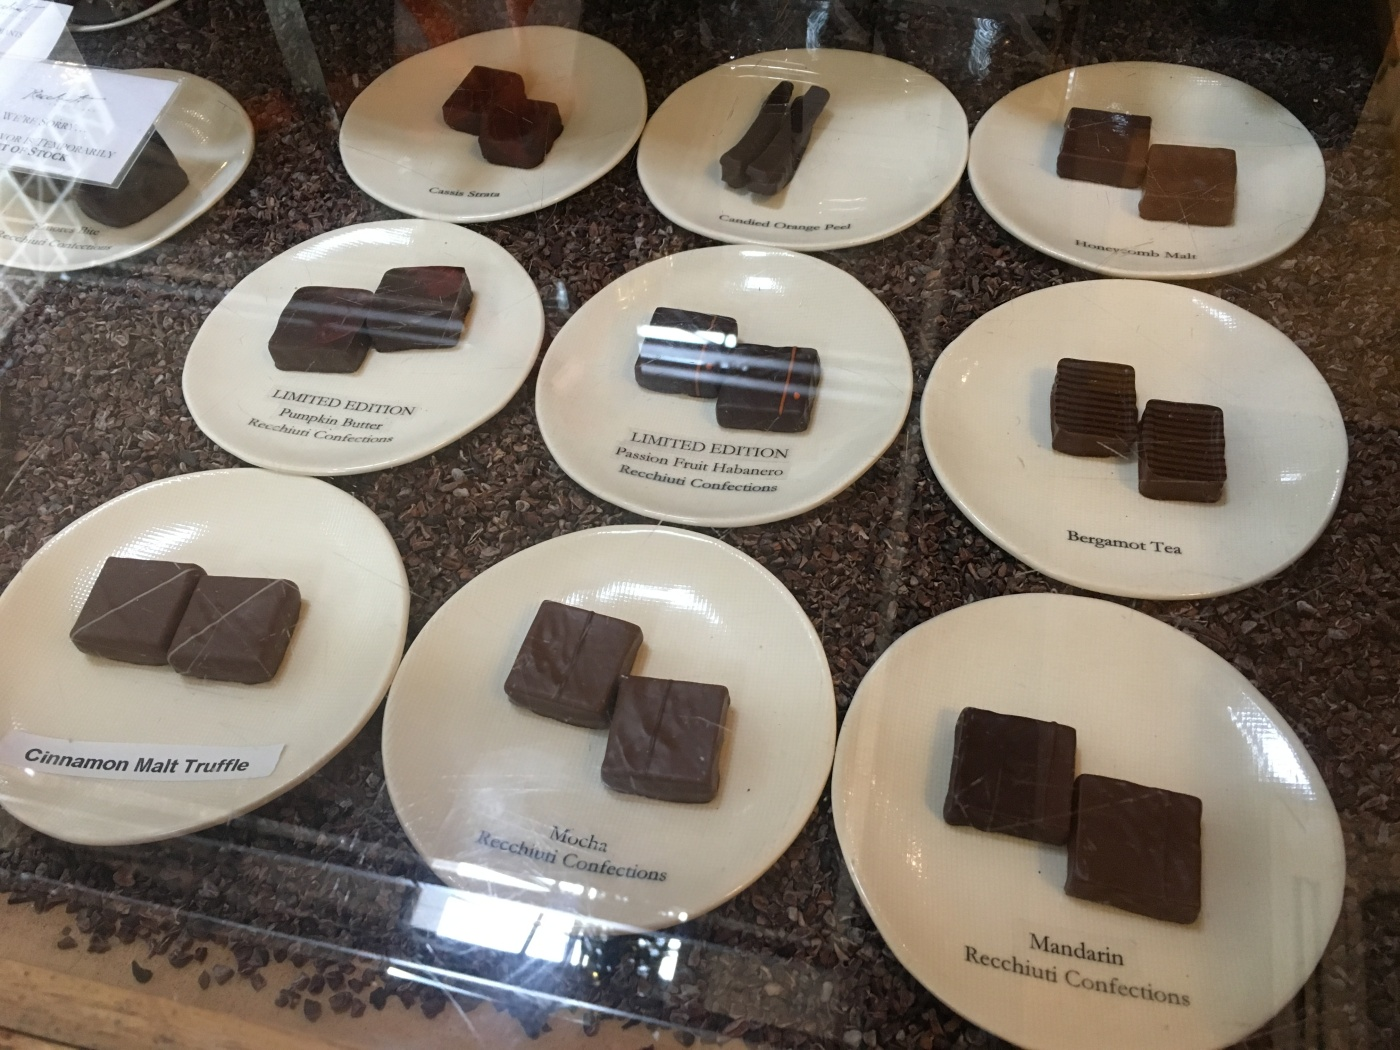 Chocolate Treats from Recchiuti Confections in San Francisco, California's Ferry Building